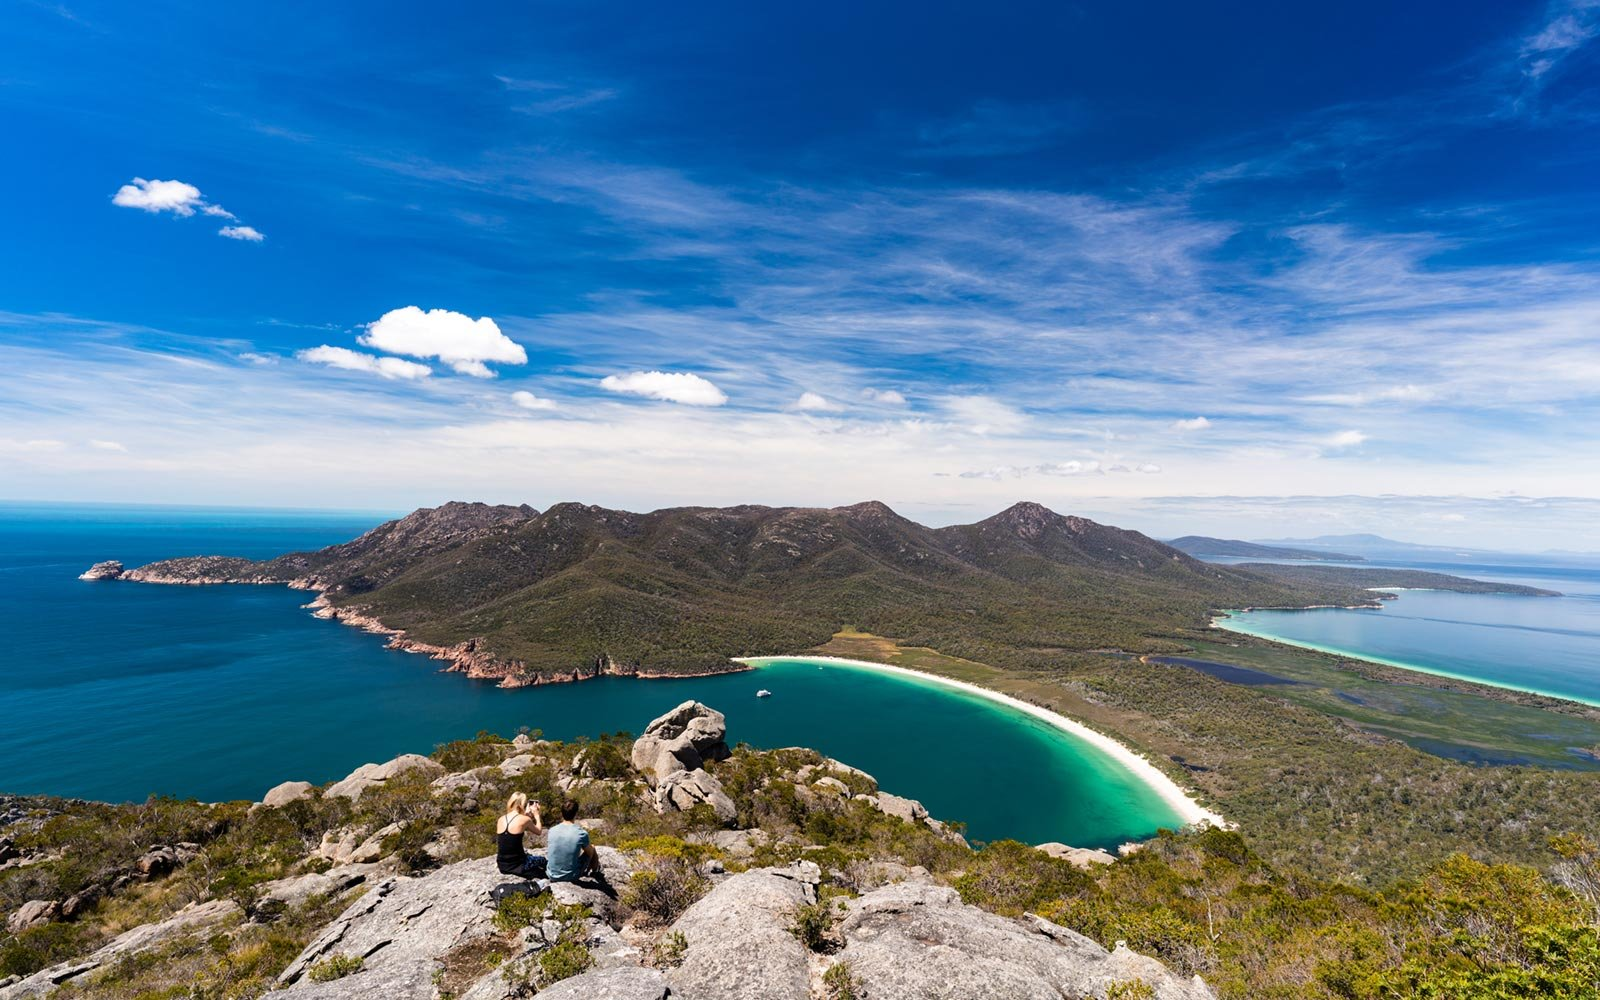 Wineglass Bay, Freycinet National Park, Tasmania, Australia